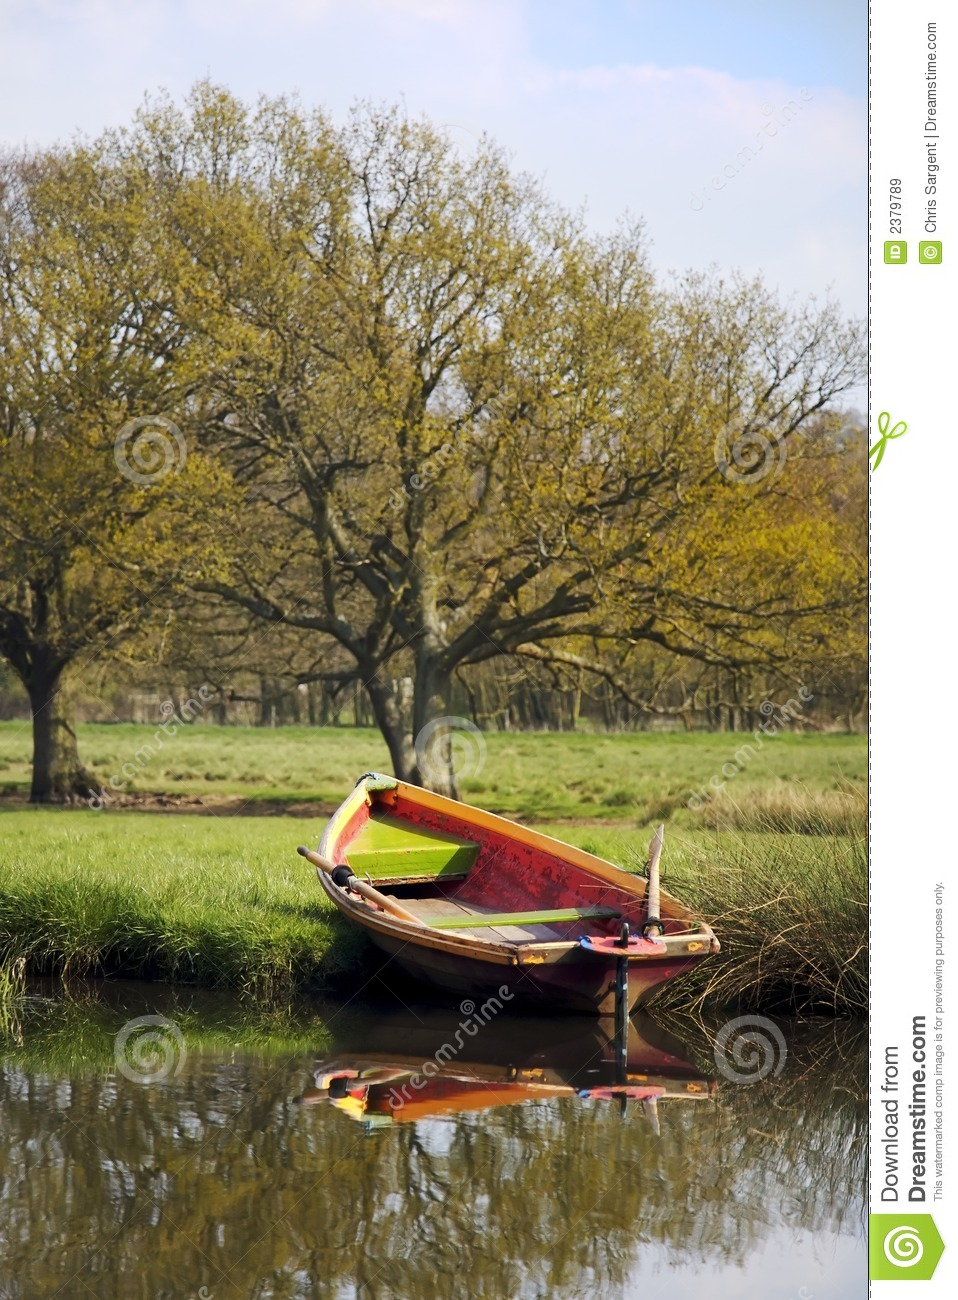 Rowing Boat On River Bank Royalty Free Stock Images - Image: 2379789